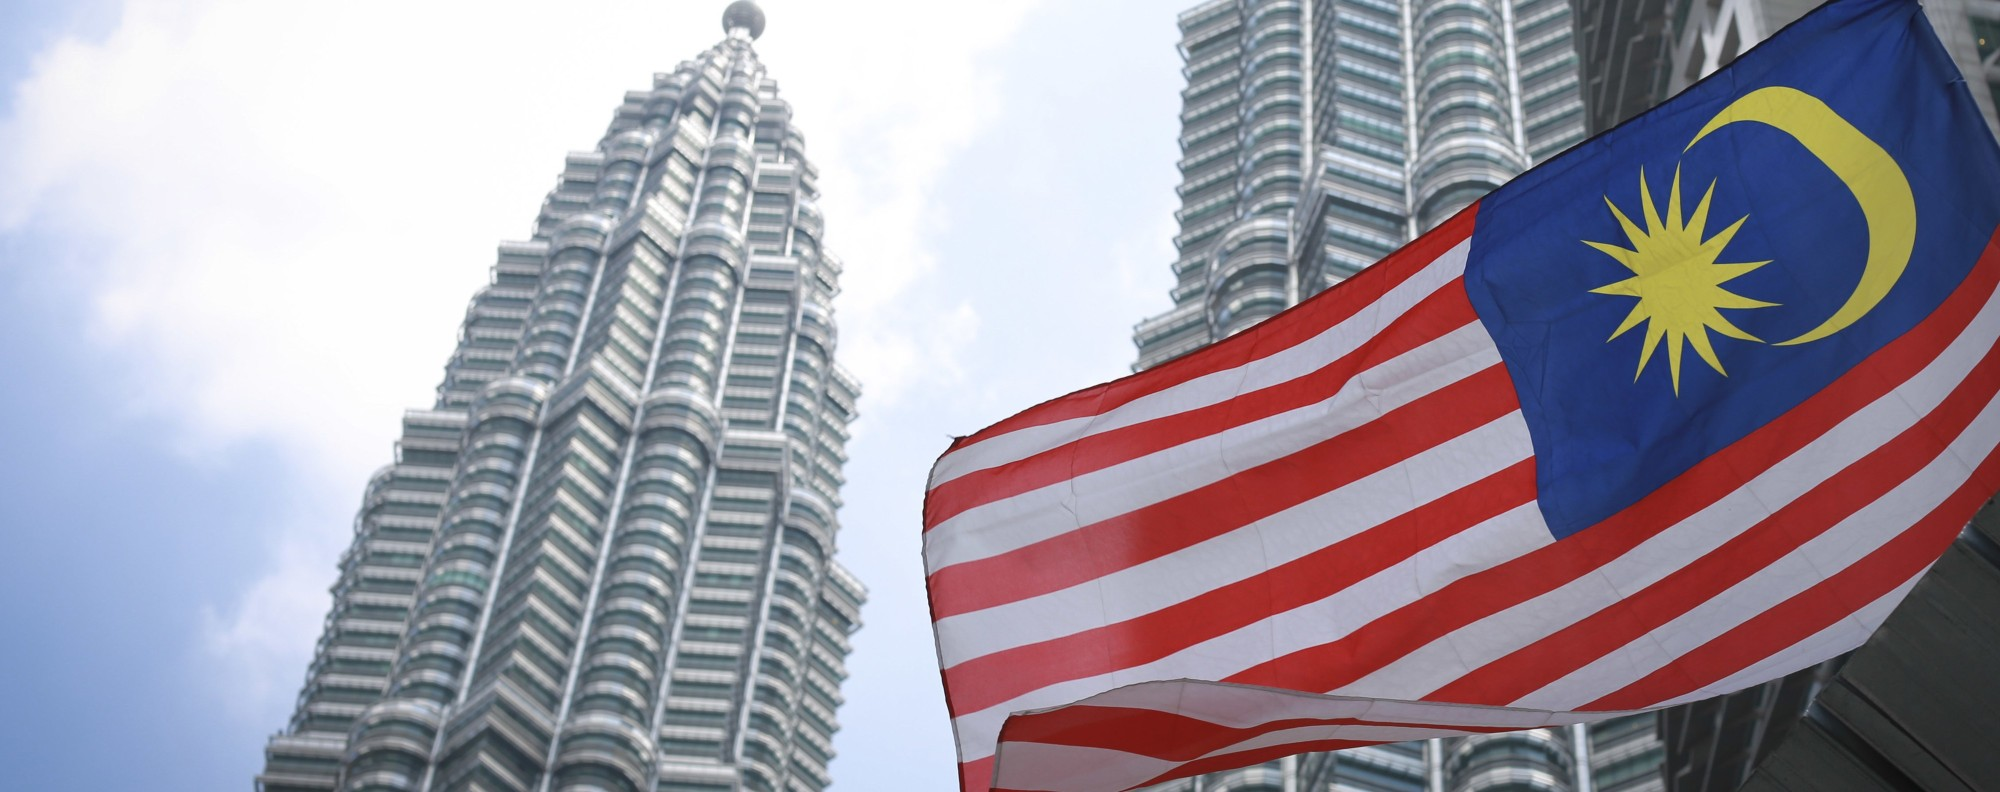 Malaysia will have a general election some time before August 2018. Photo: AP